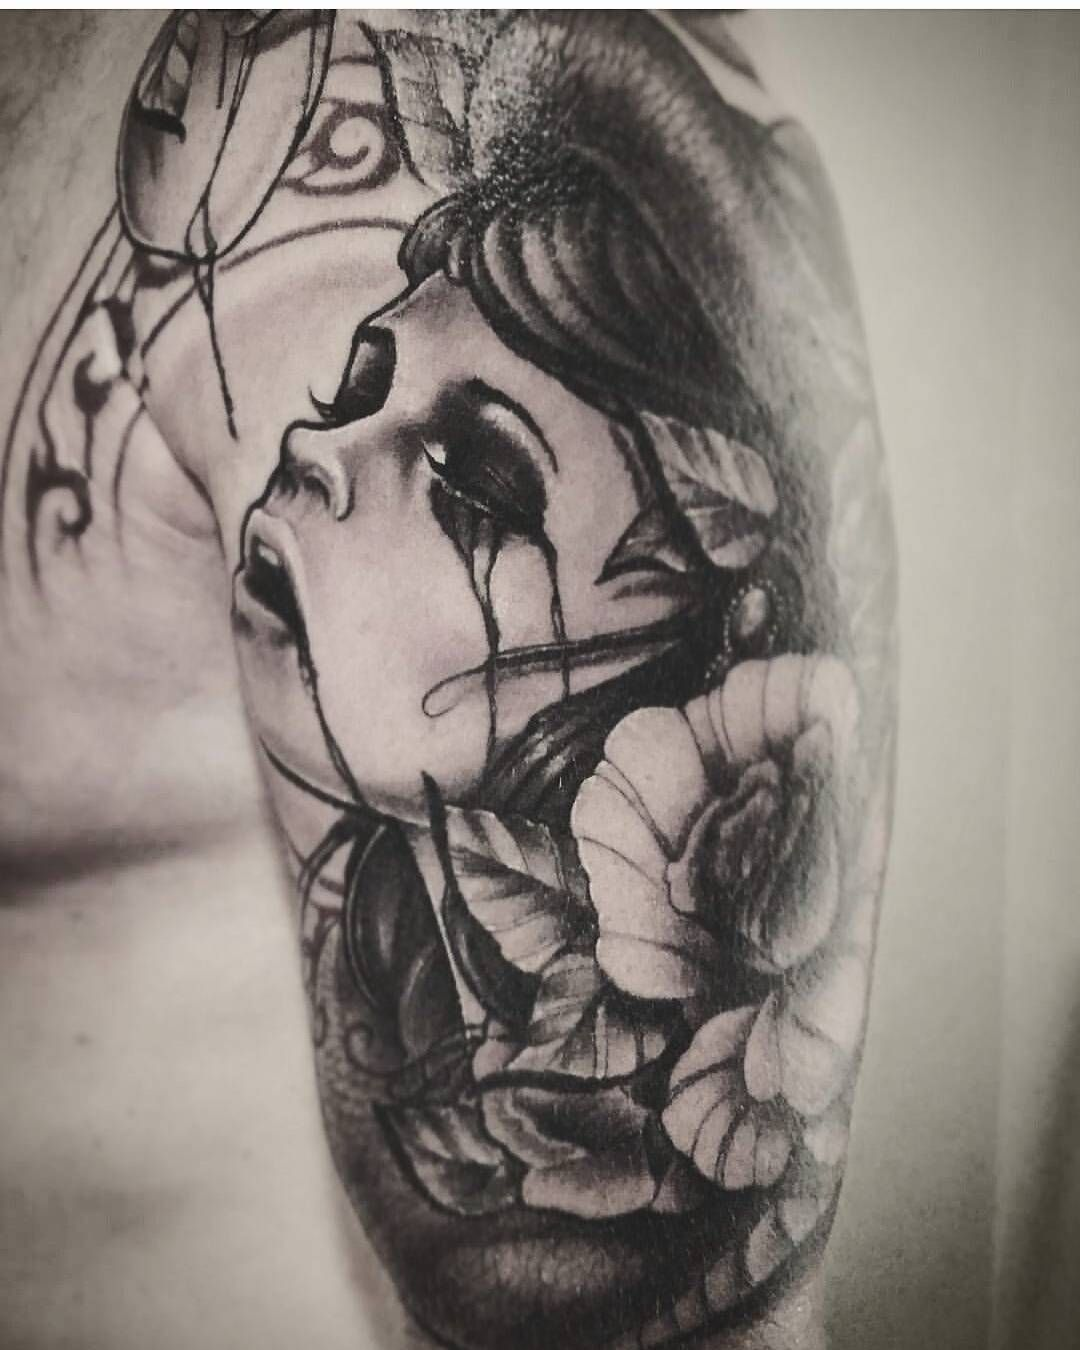 Eve And Apple Garden Of Eden Snake Serpent Demon Satan Knowledge Of Good And Evi Easy Half Sleeve Tattoos Tattoos For Women Tattoos For Women Half Sleeve